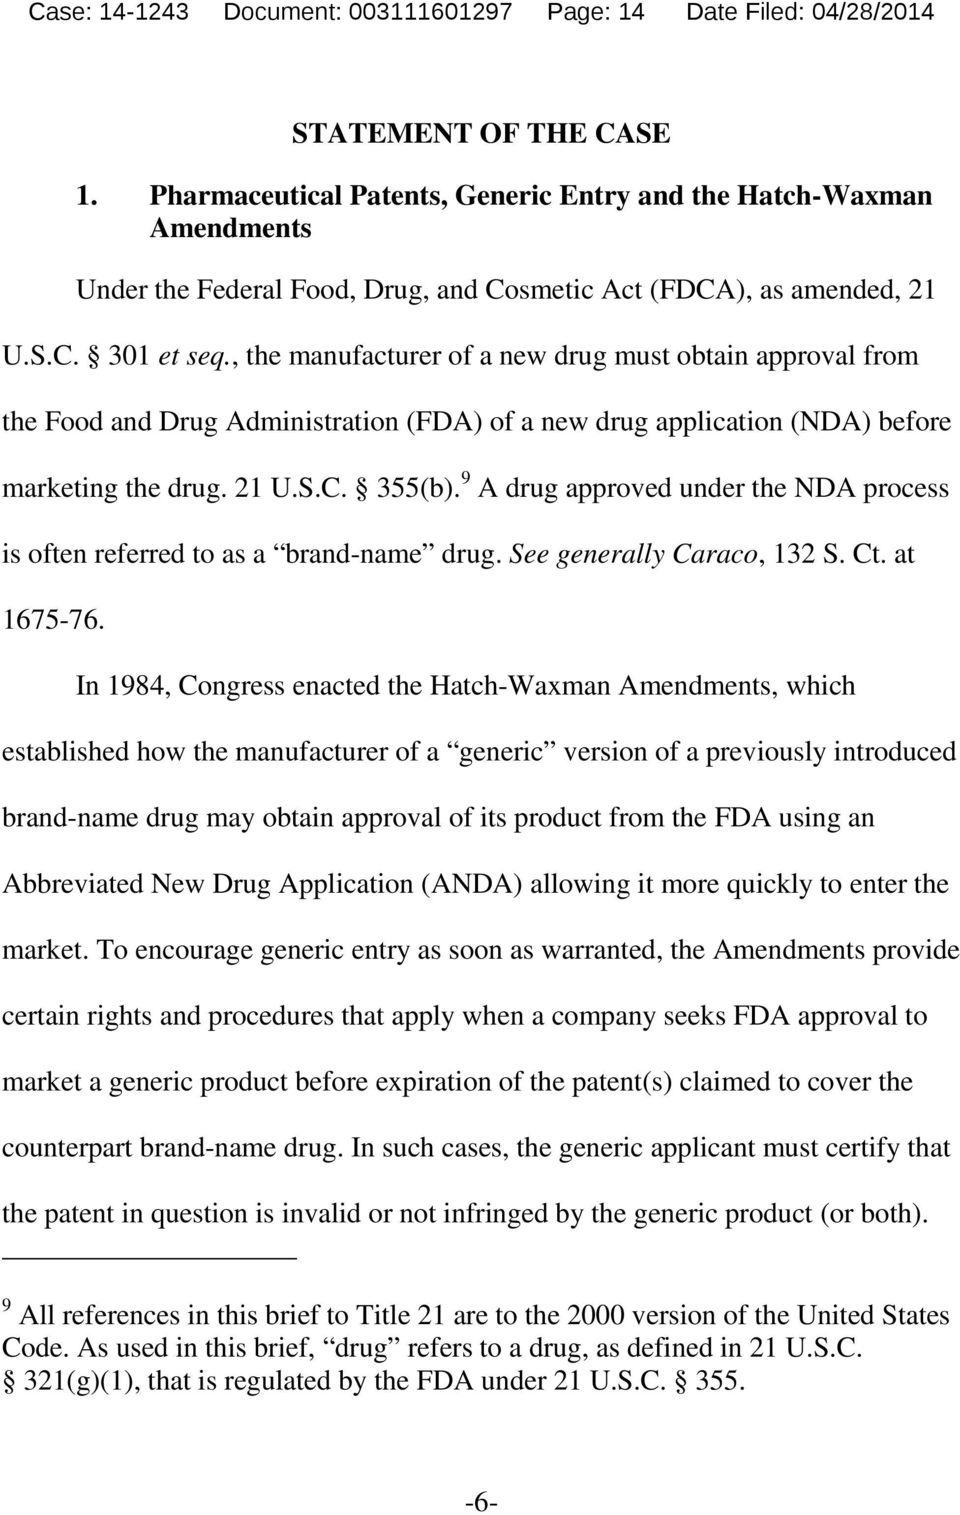 , the manufacturer of a new drug must obtain approval from the Food and Drug Administration (FDA) of a new drug application (NDA) before marketing the drug. 21 U.S.C. 355(b).